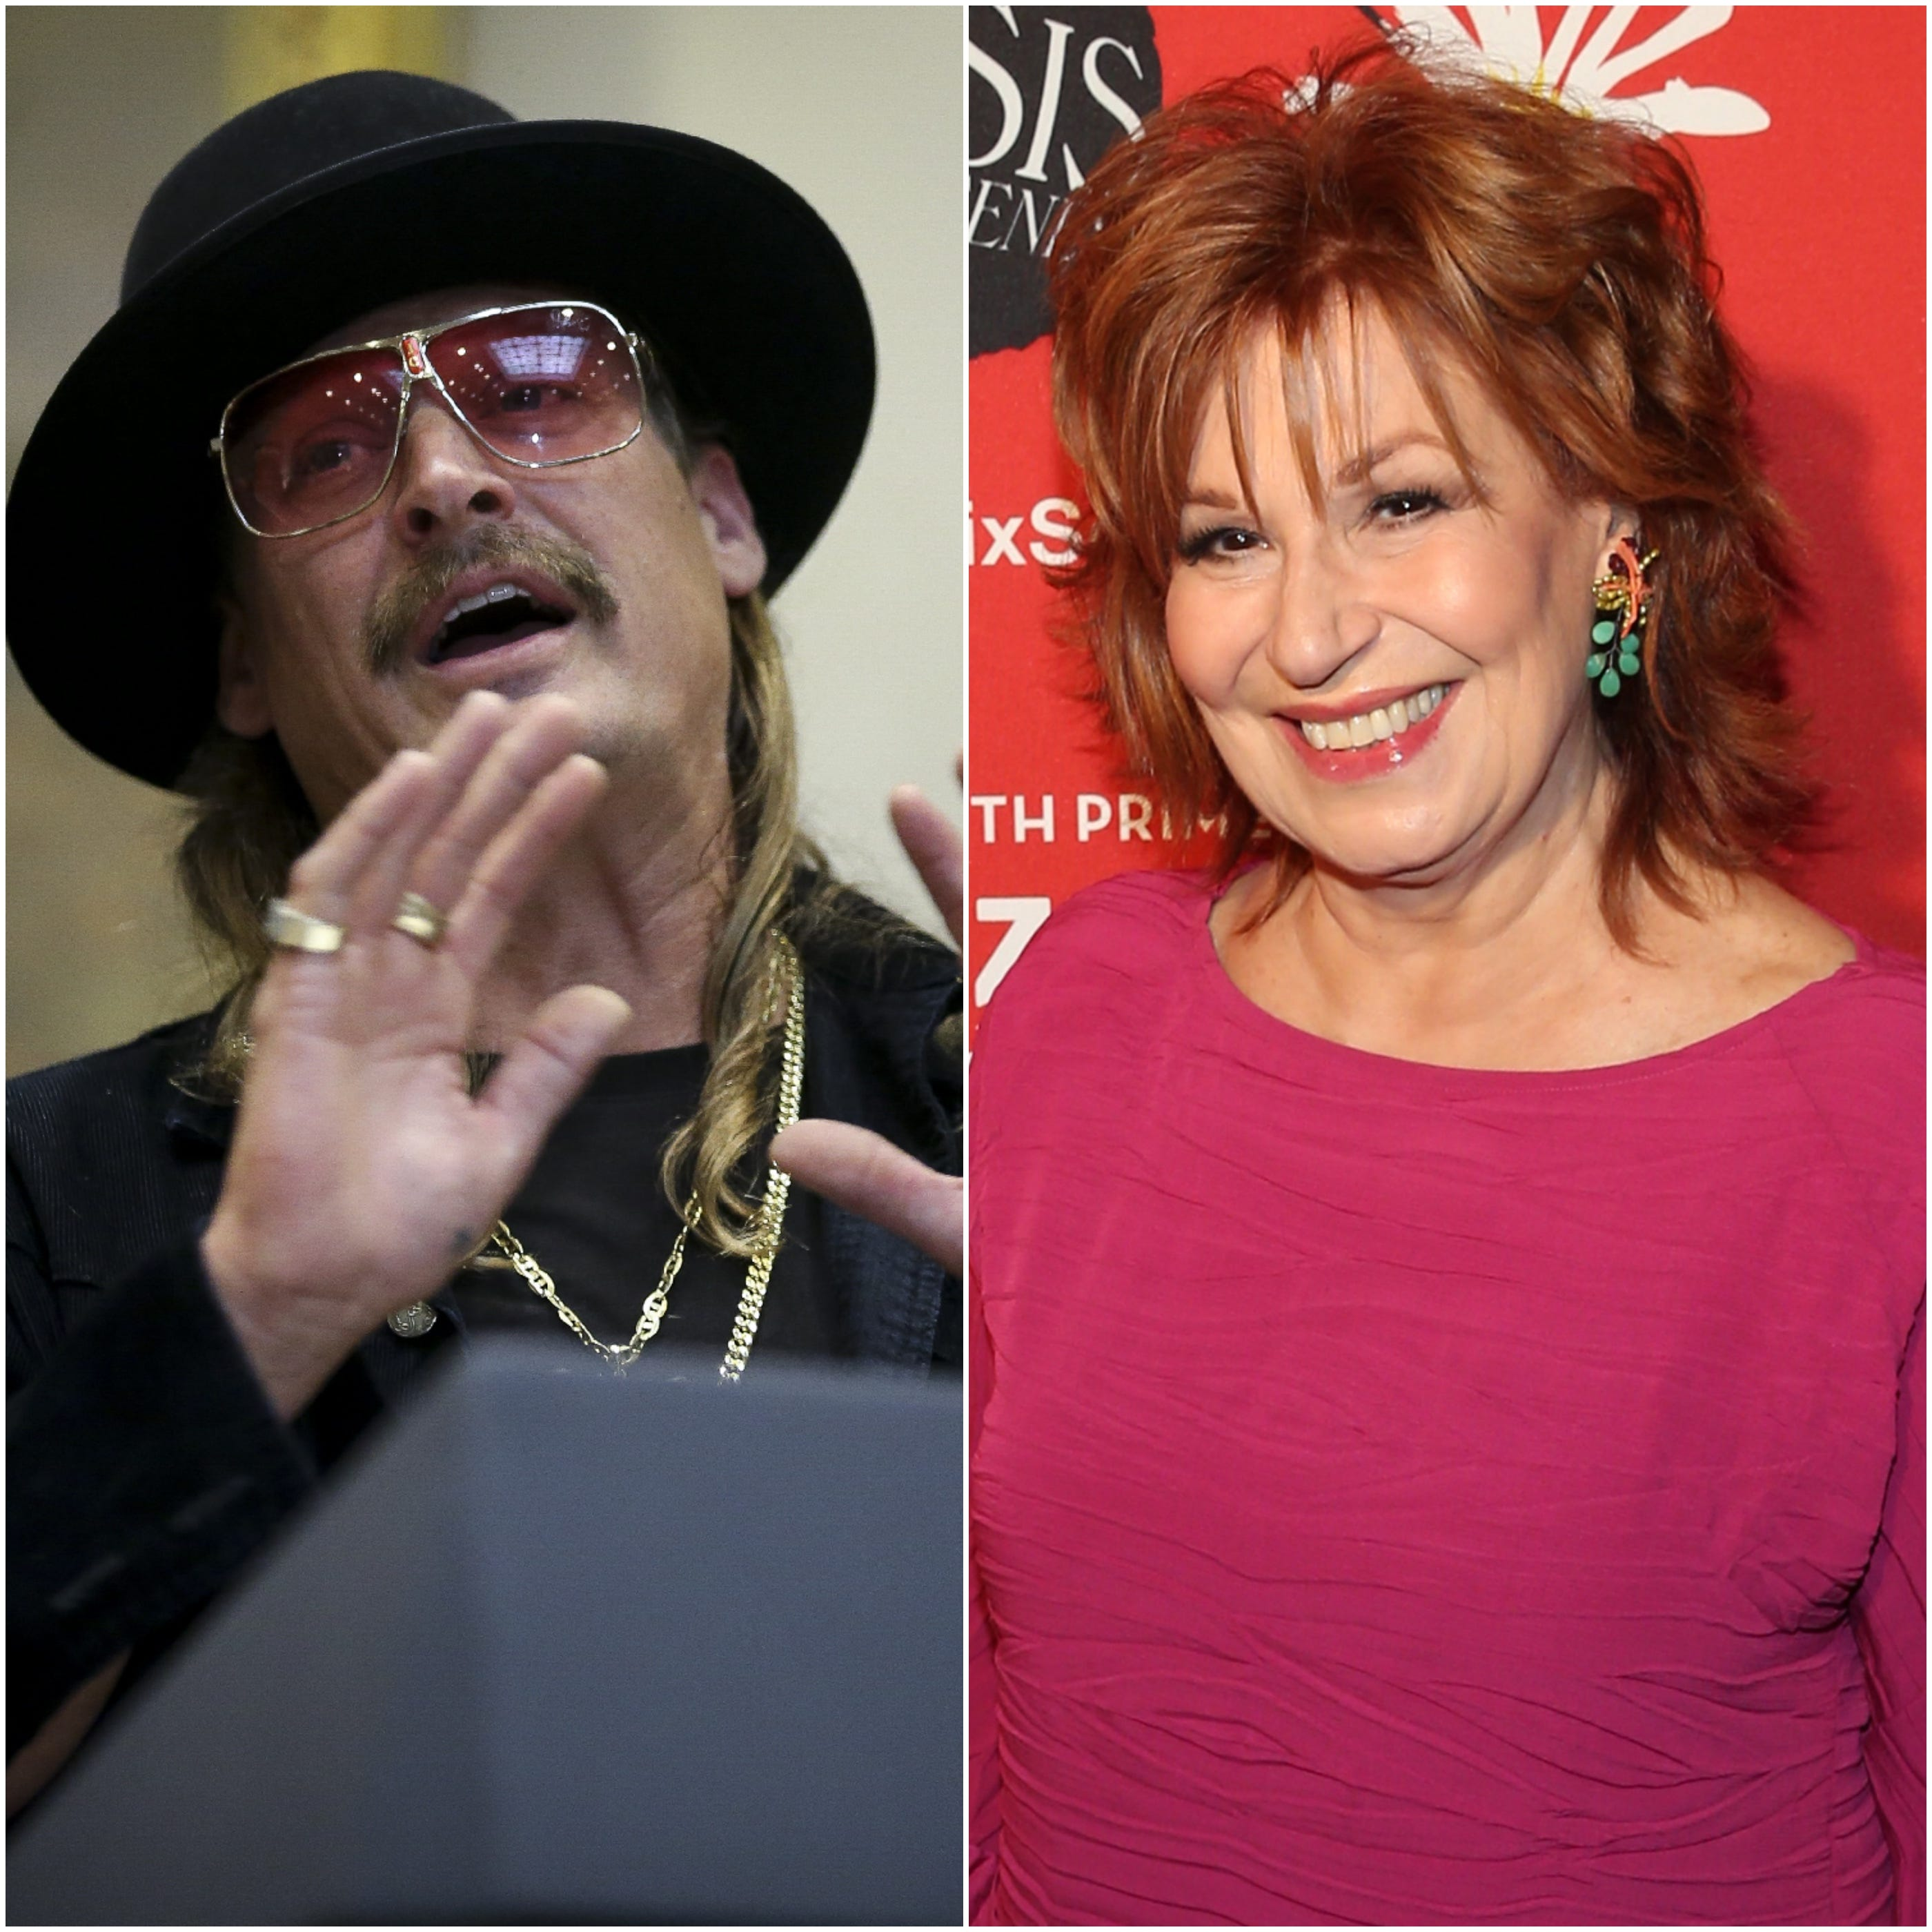 'Screw that Joy Behar': 'View' host reacts to Kid Rock's NSFW insult from 'Fox & Friends'